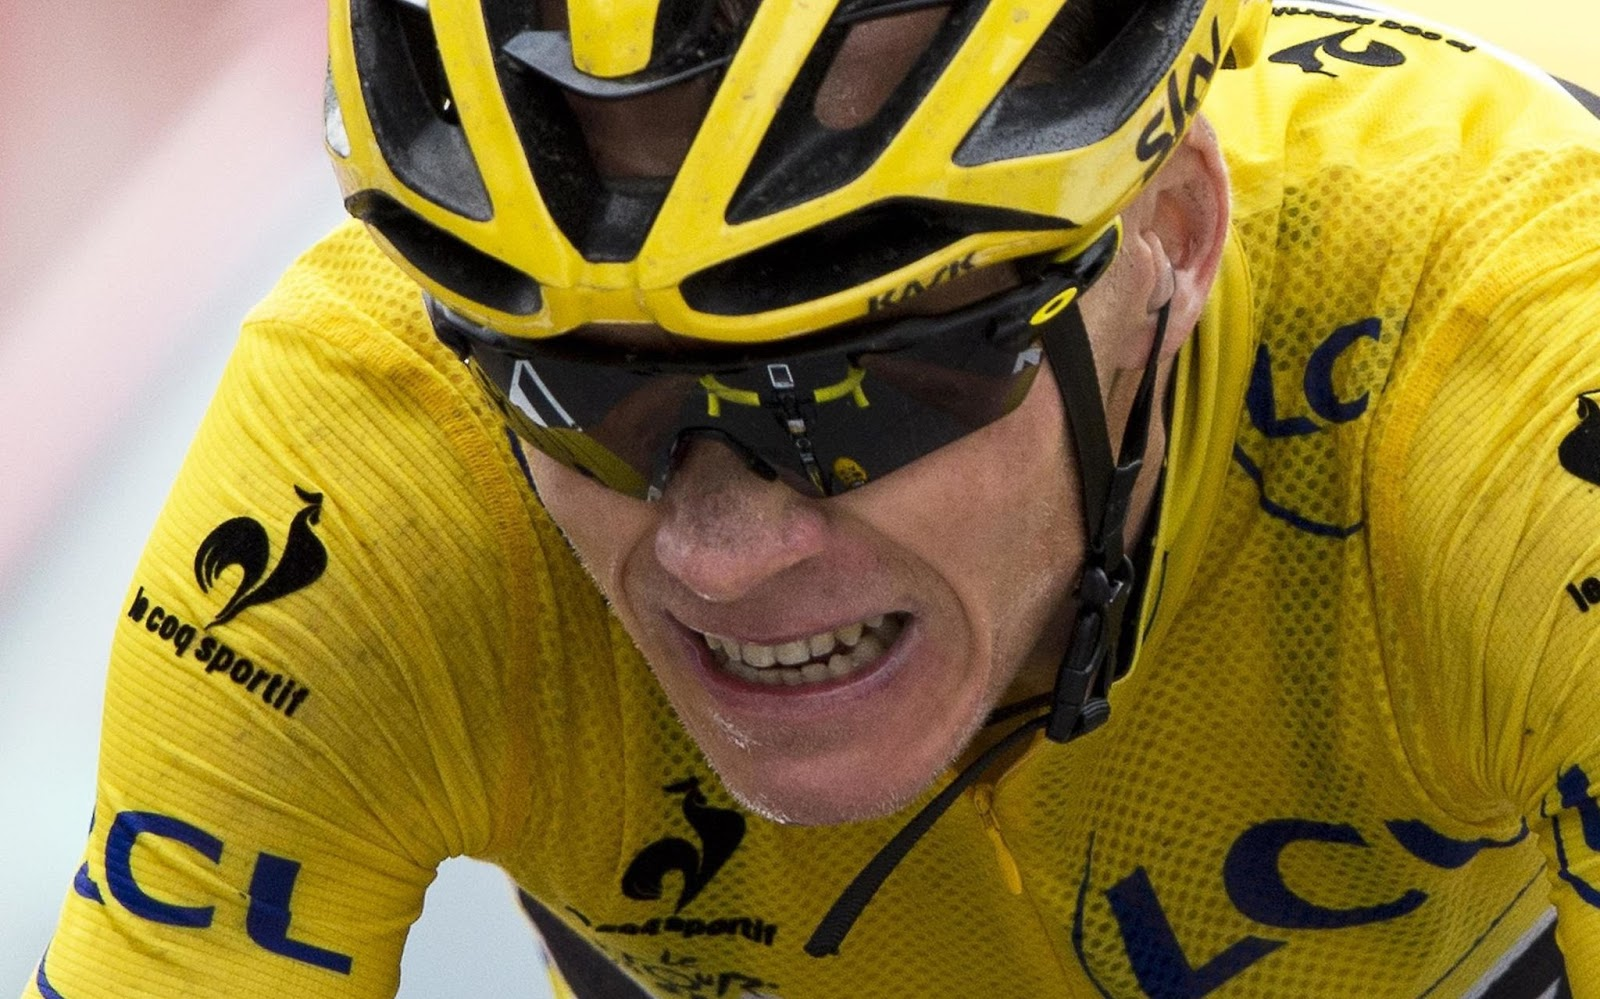 CHRIS FROOME 4